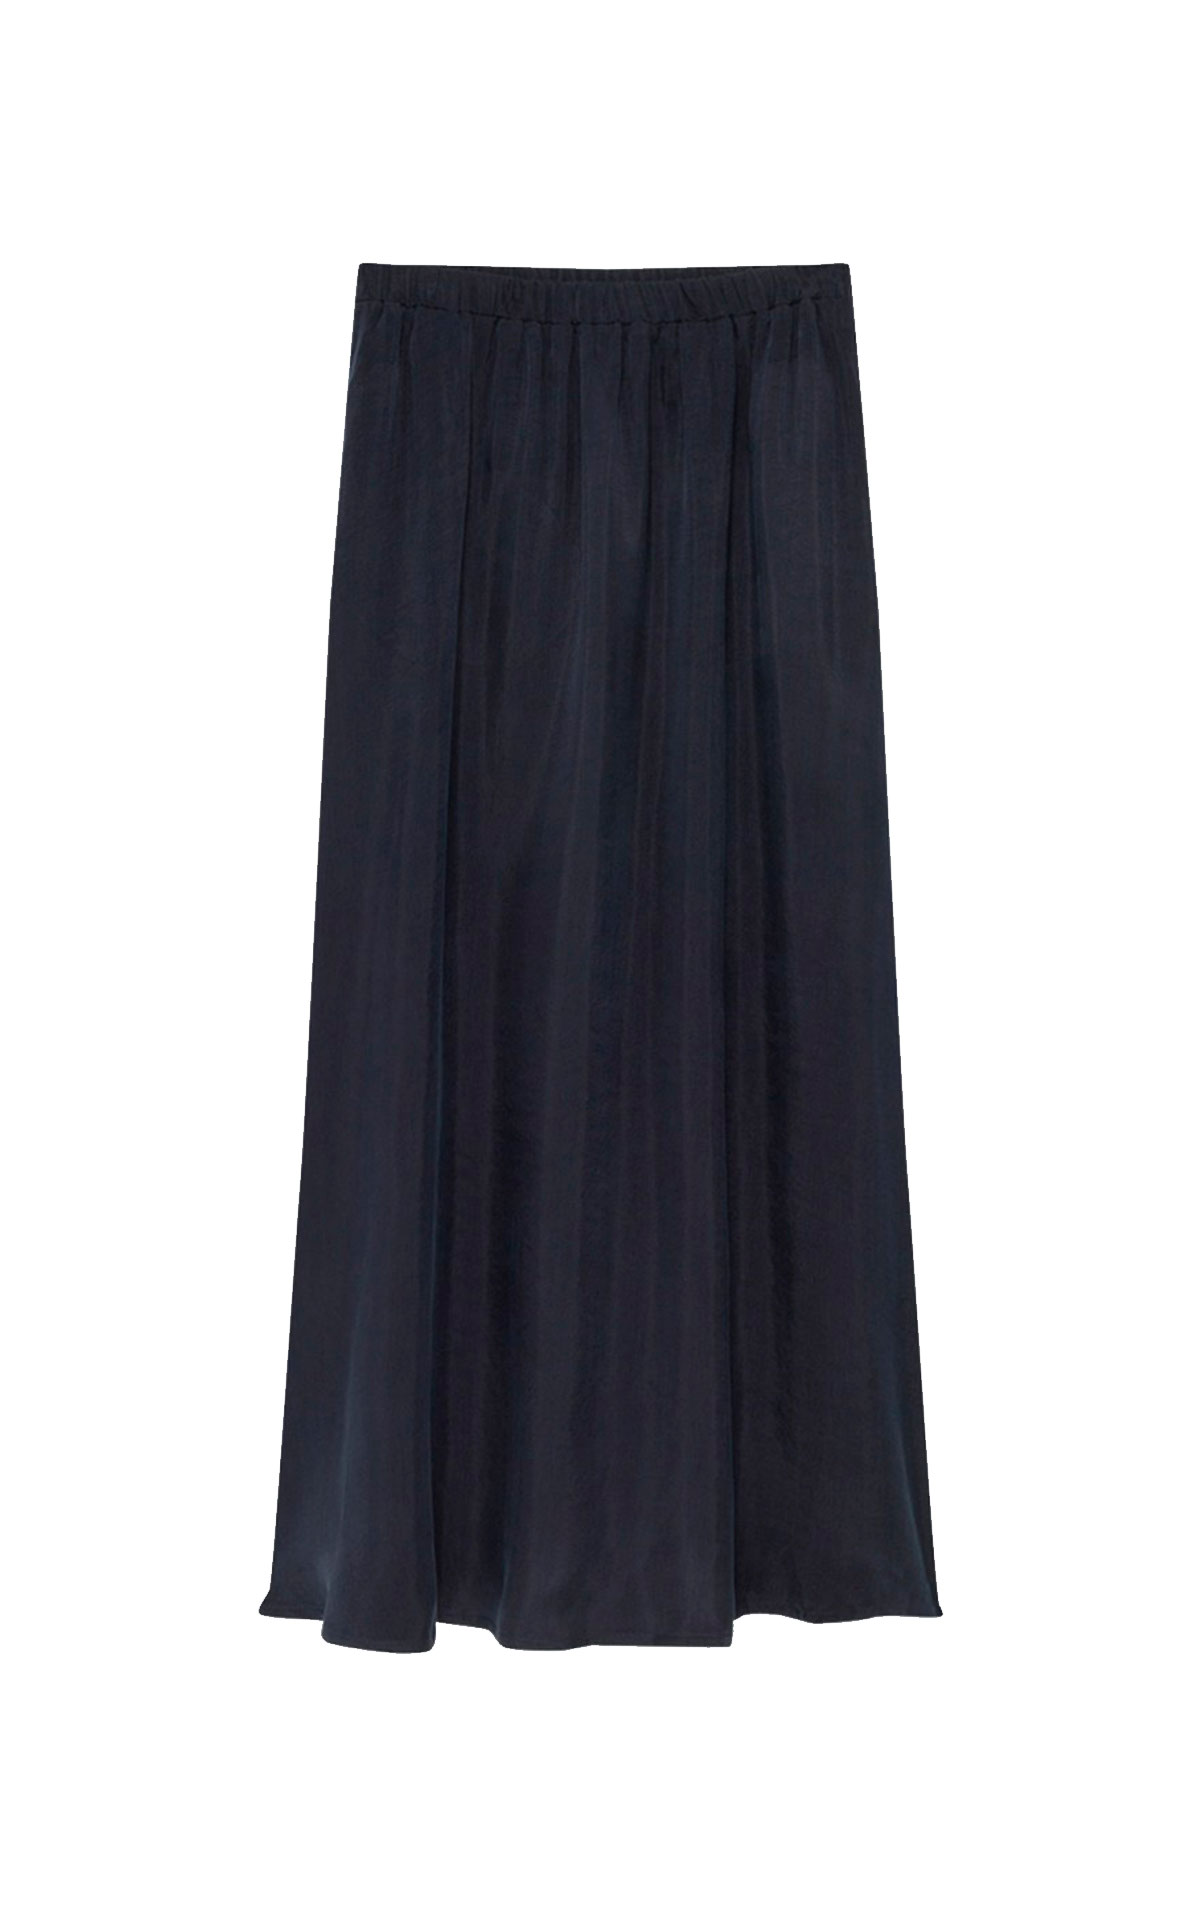 Black long skirt American Vintage